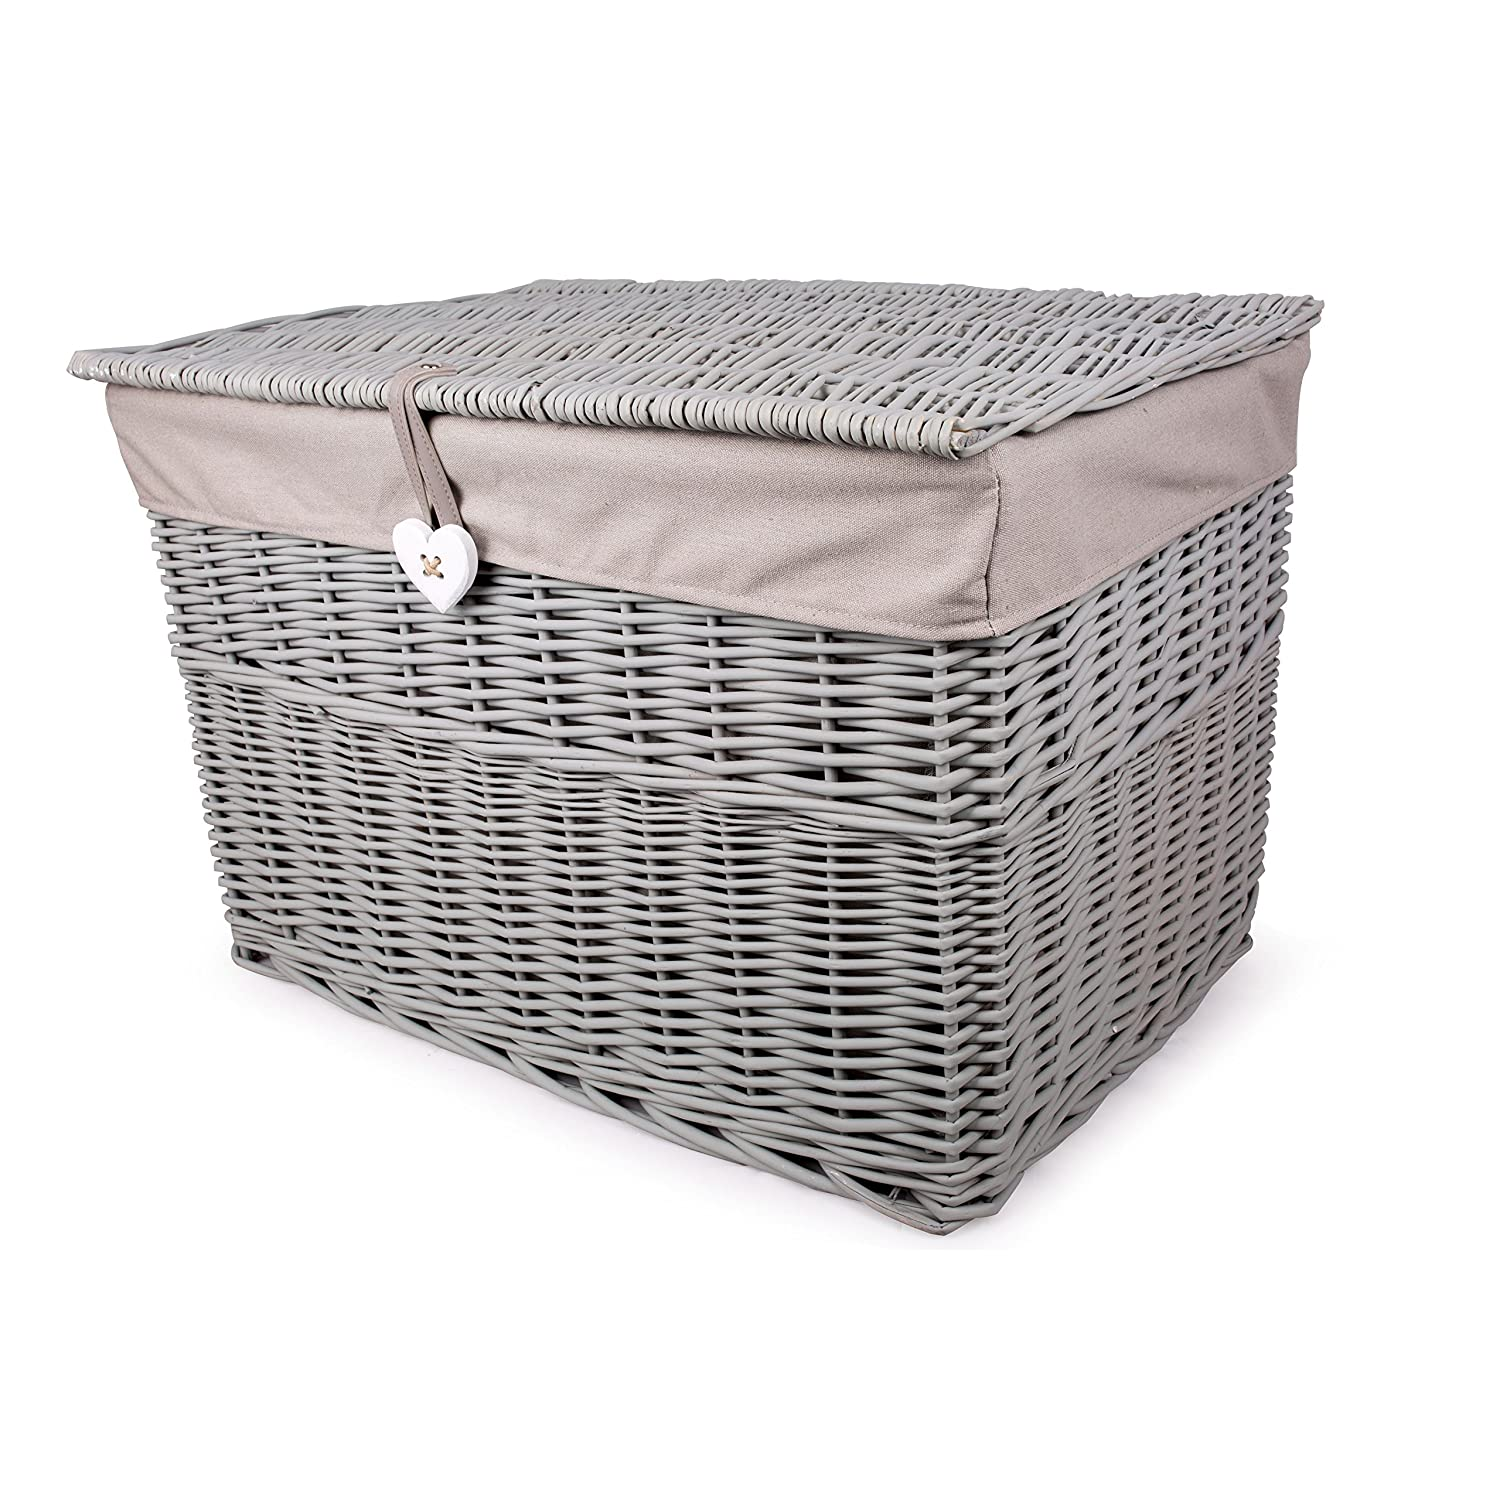 Grey Painted Wicker Trunk Storage Chest Hamper Basket Box Removable Lining (Large) Basic House